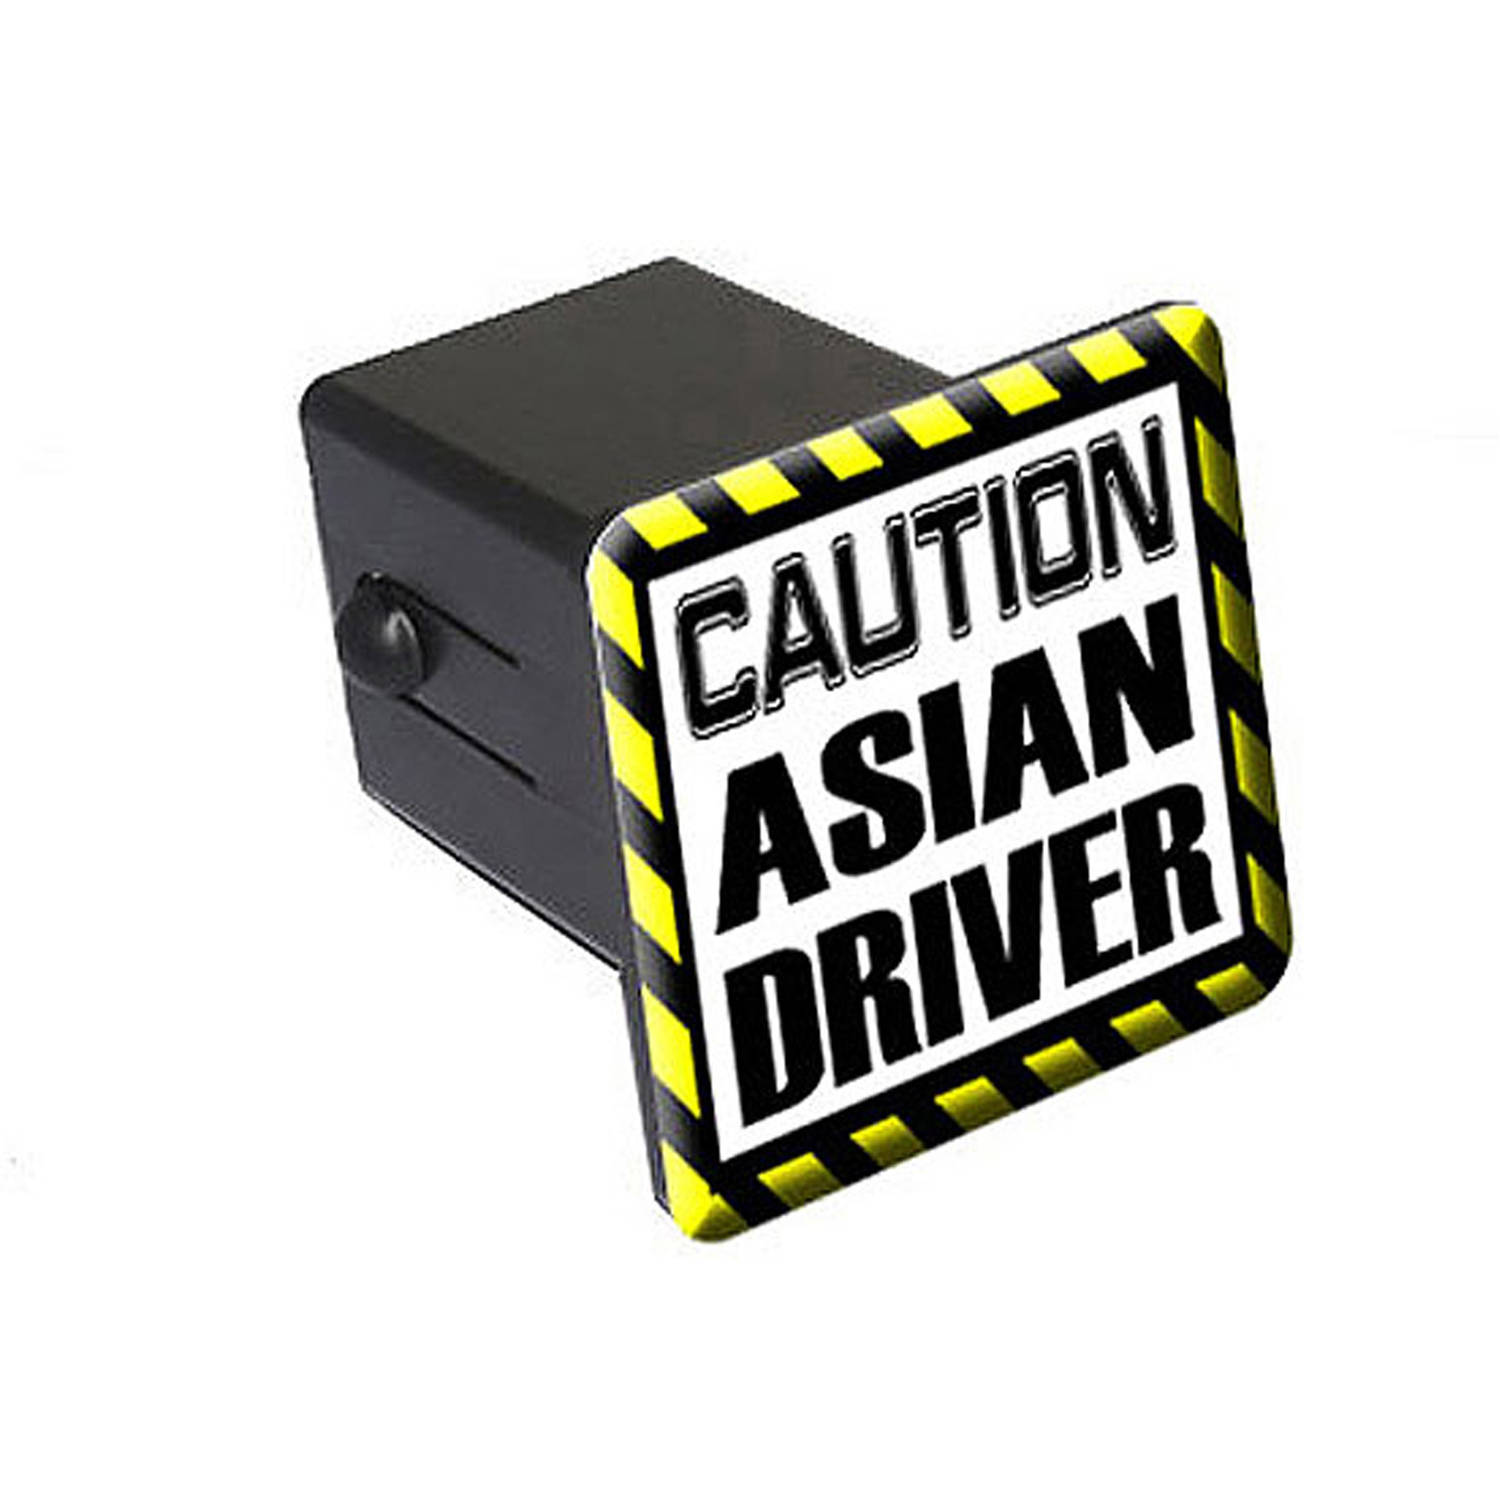 "Caution Asian Driver 2"" Tow Trailer Hitch Cover Plug Insert"